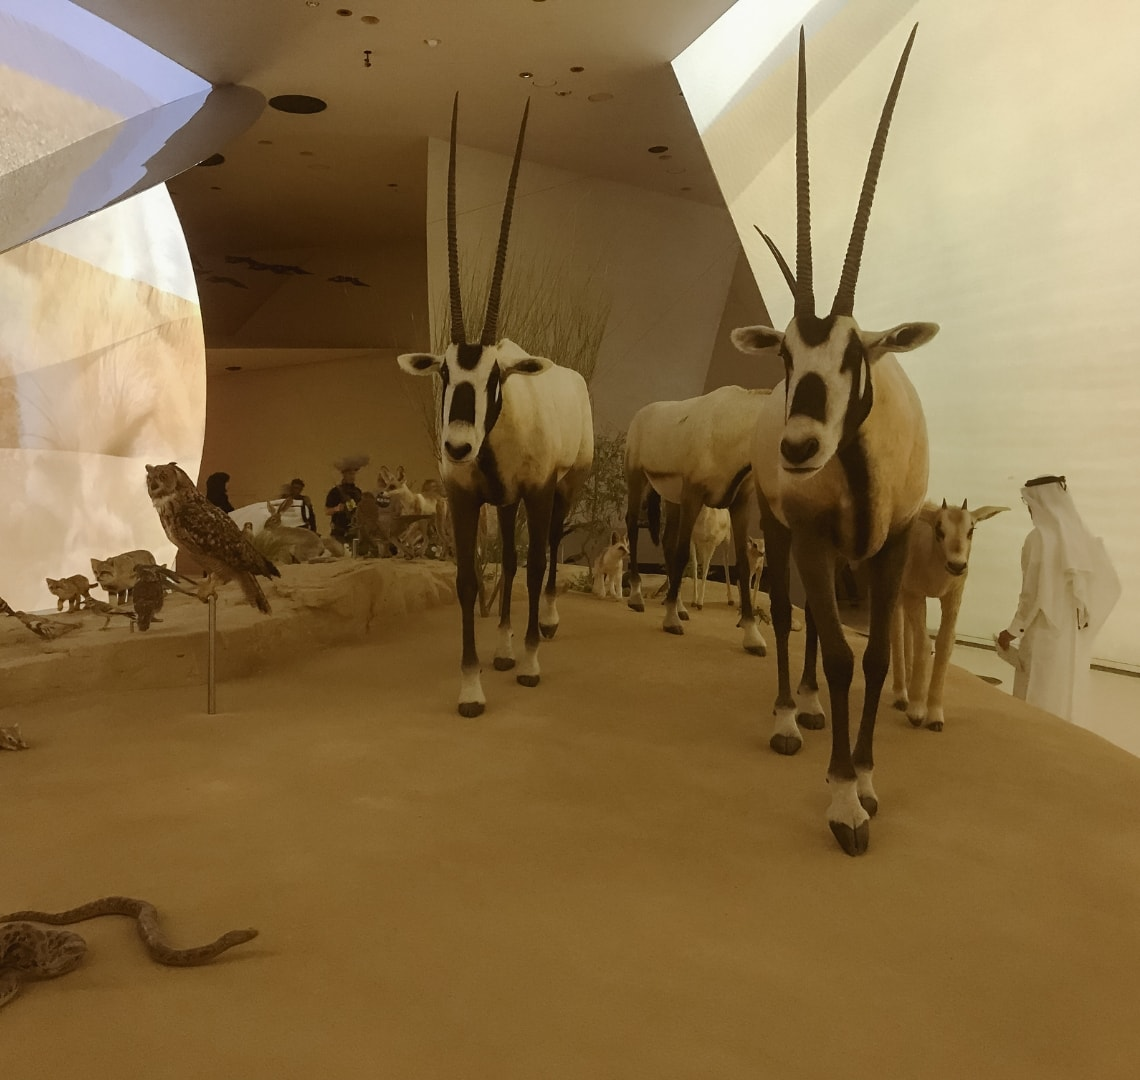 National Museum of Qatar - Oryx and other wildlife displayed in the first gallery